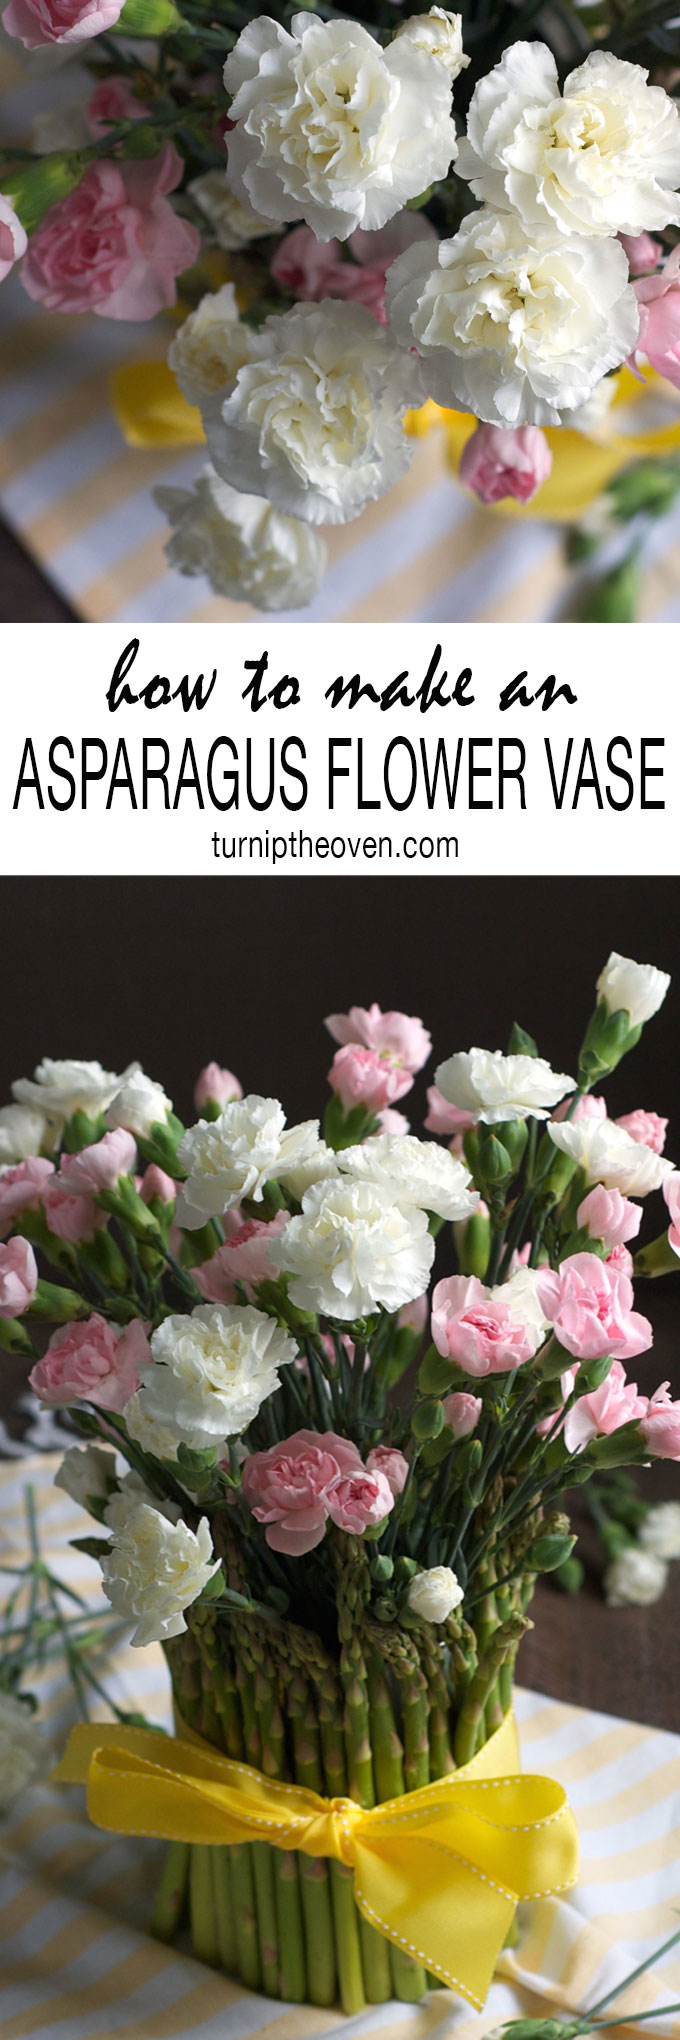 This DIY asparagus flower vase is perfect for spring! All it takes is an old coffee can, some rubber bands, ribbon, asparagus, and a bunch of flowers. It's a simple crafts project for you or your kids, and the results are so beautiful and impressive.